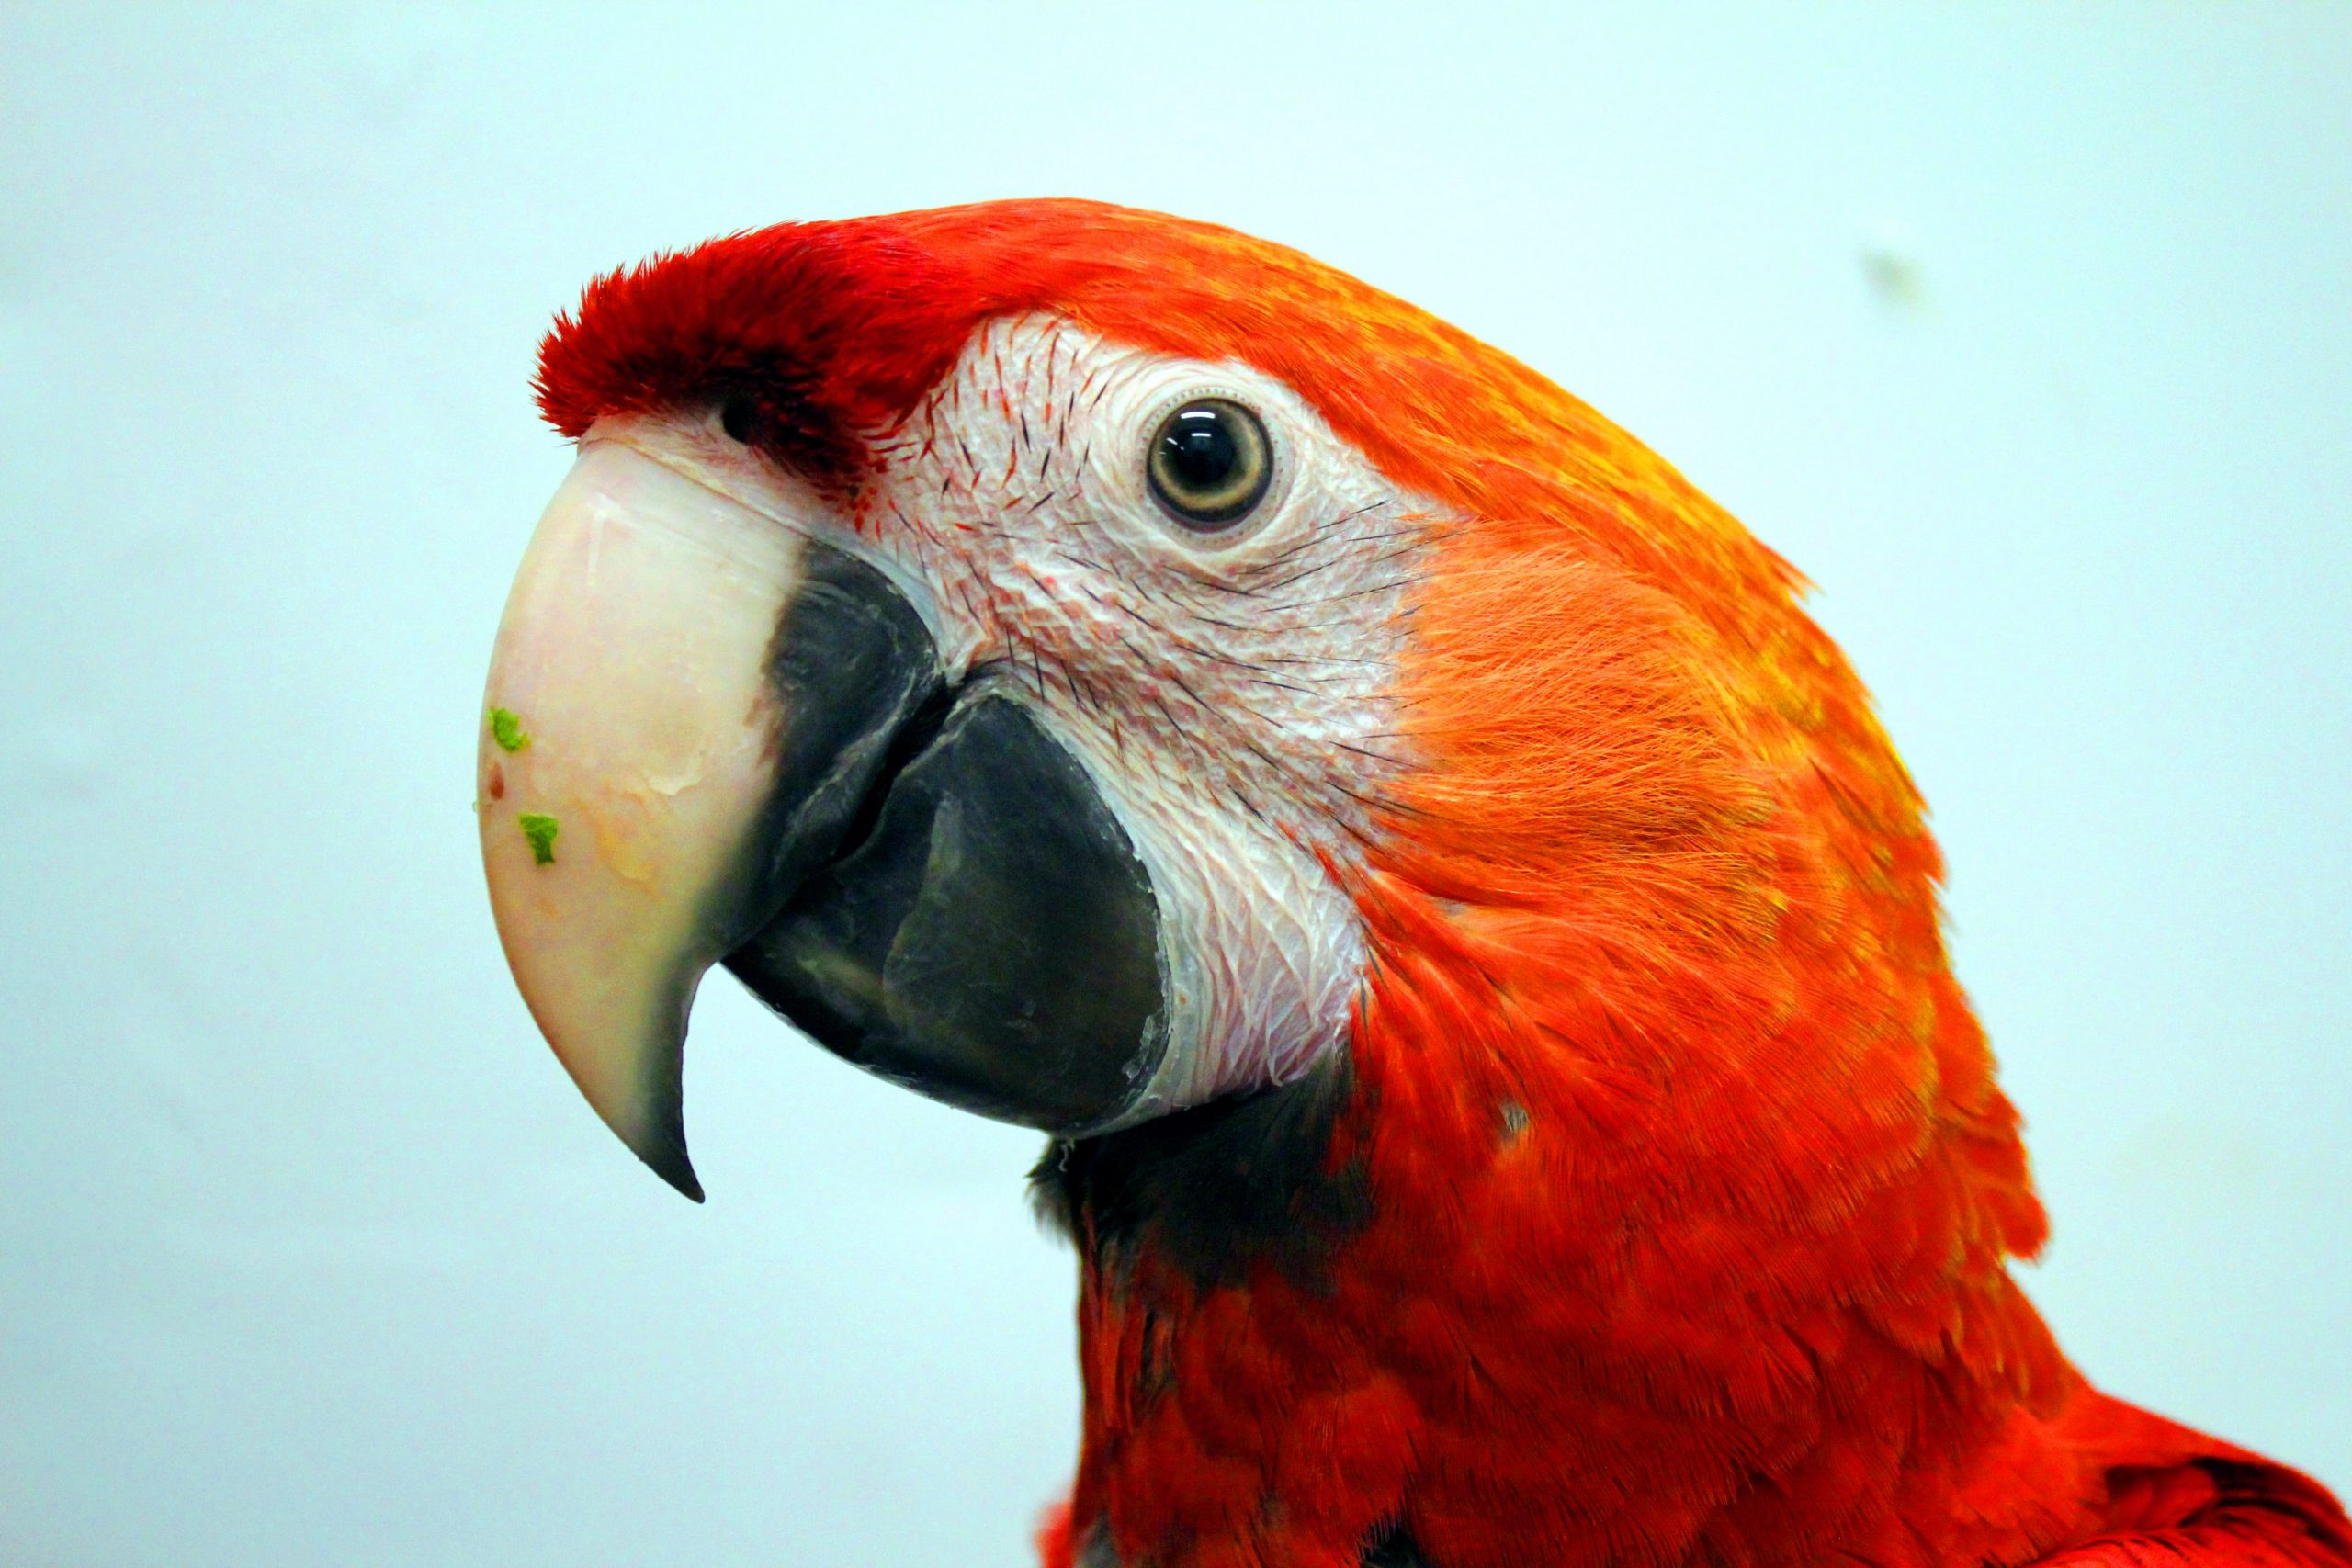 The Stunning & Colorful Macaw Parrot